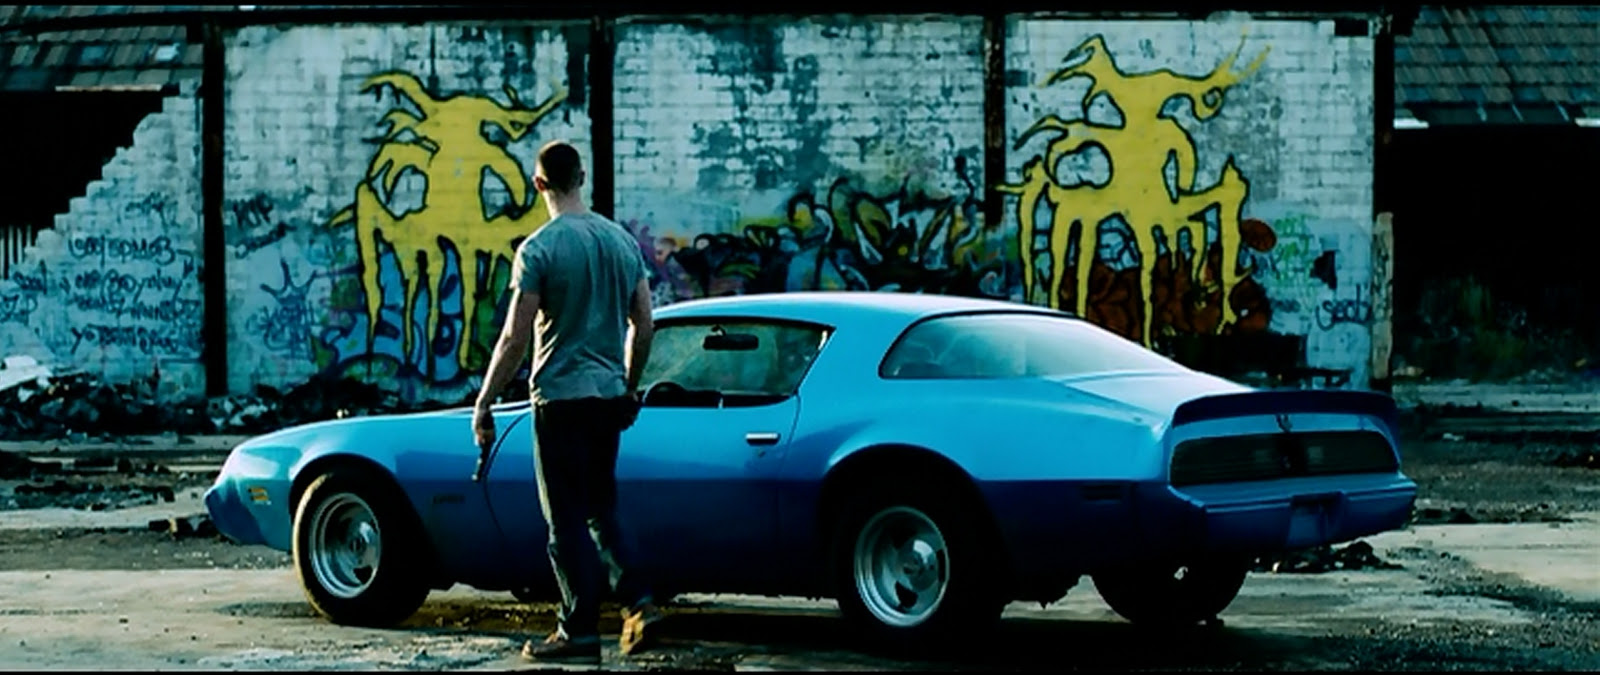 Guns, ruins, and a muscle car: the most Detroit picture you will ever see outside of Robocop.